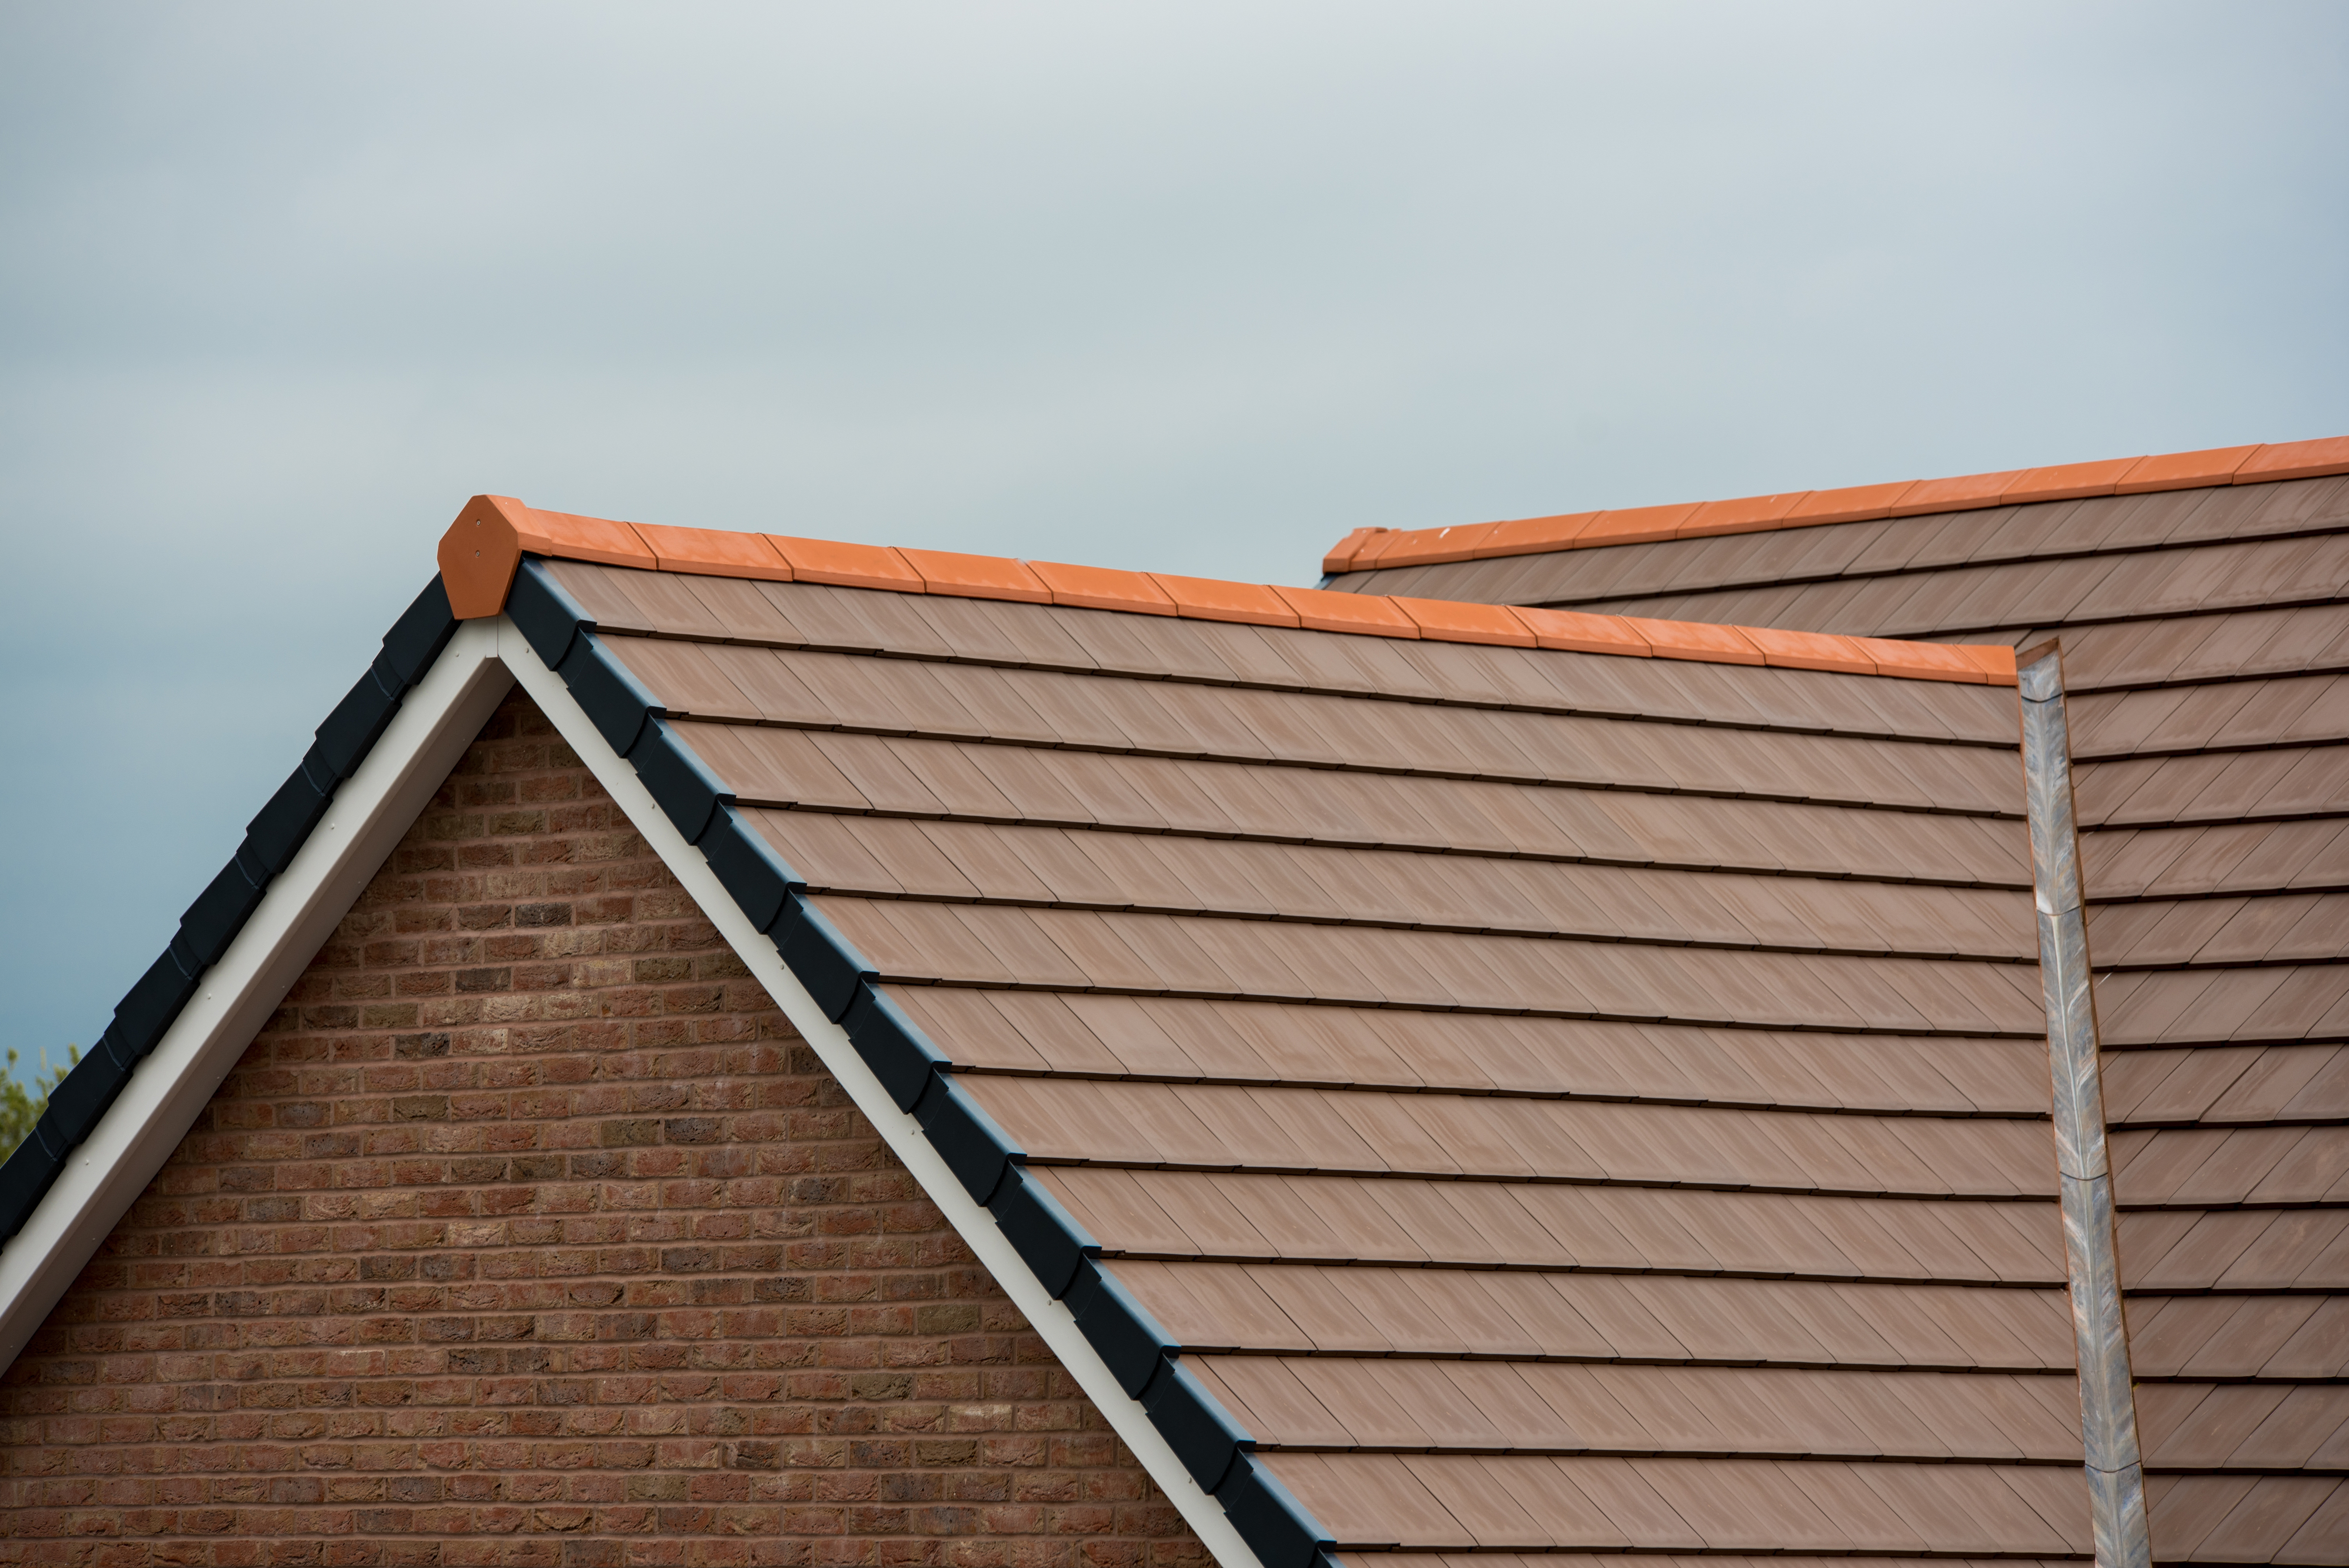 Galex Verea clay flat interlocking roof tile